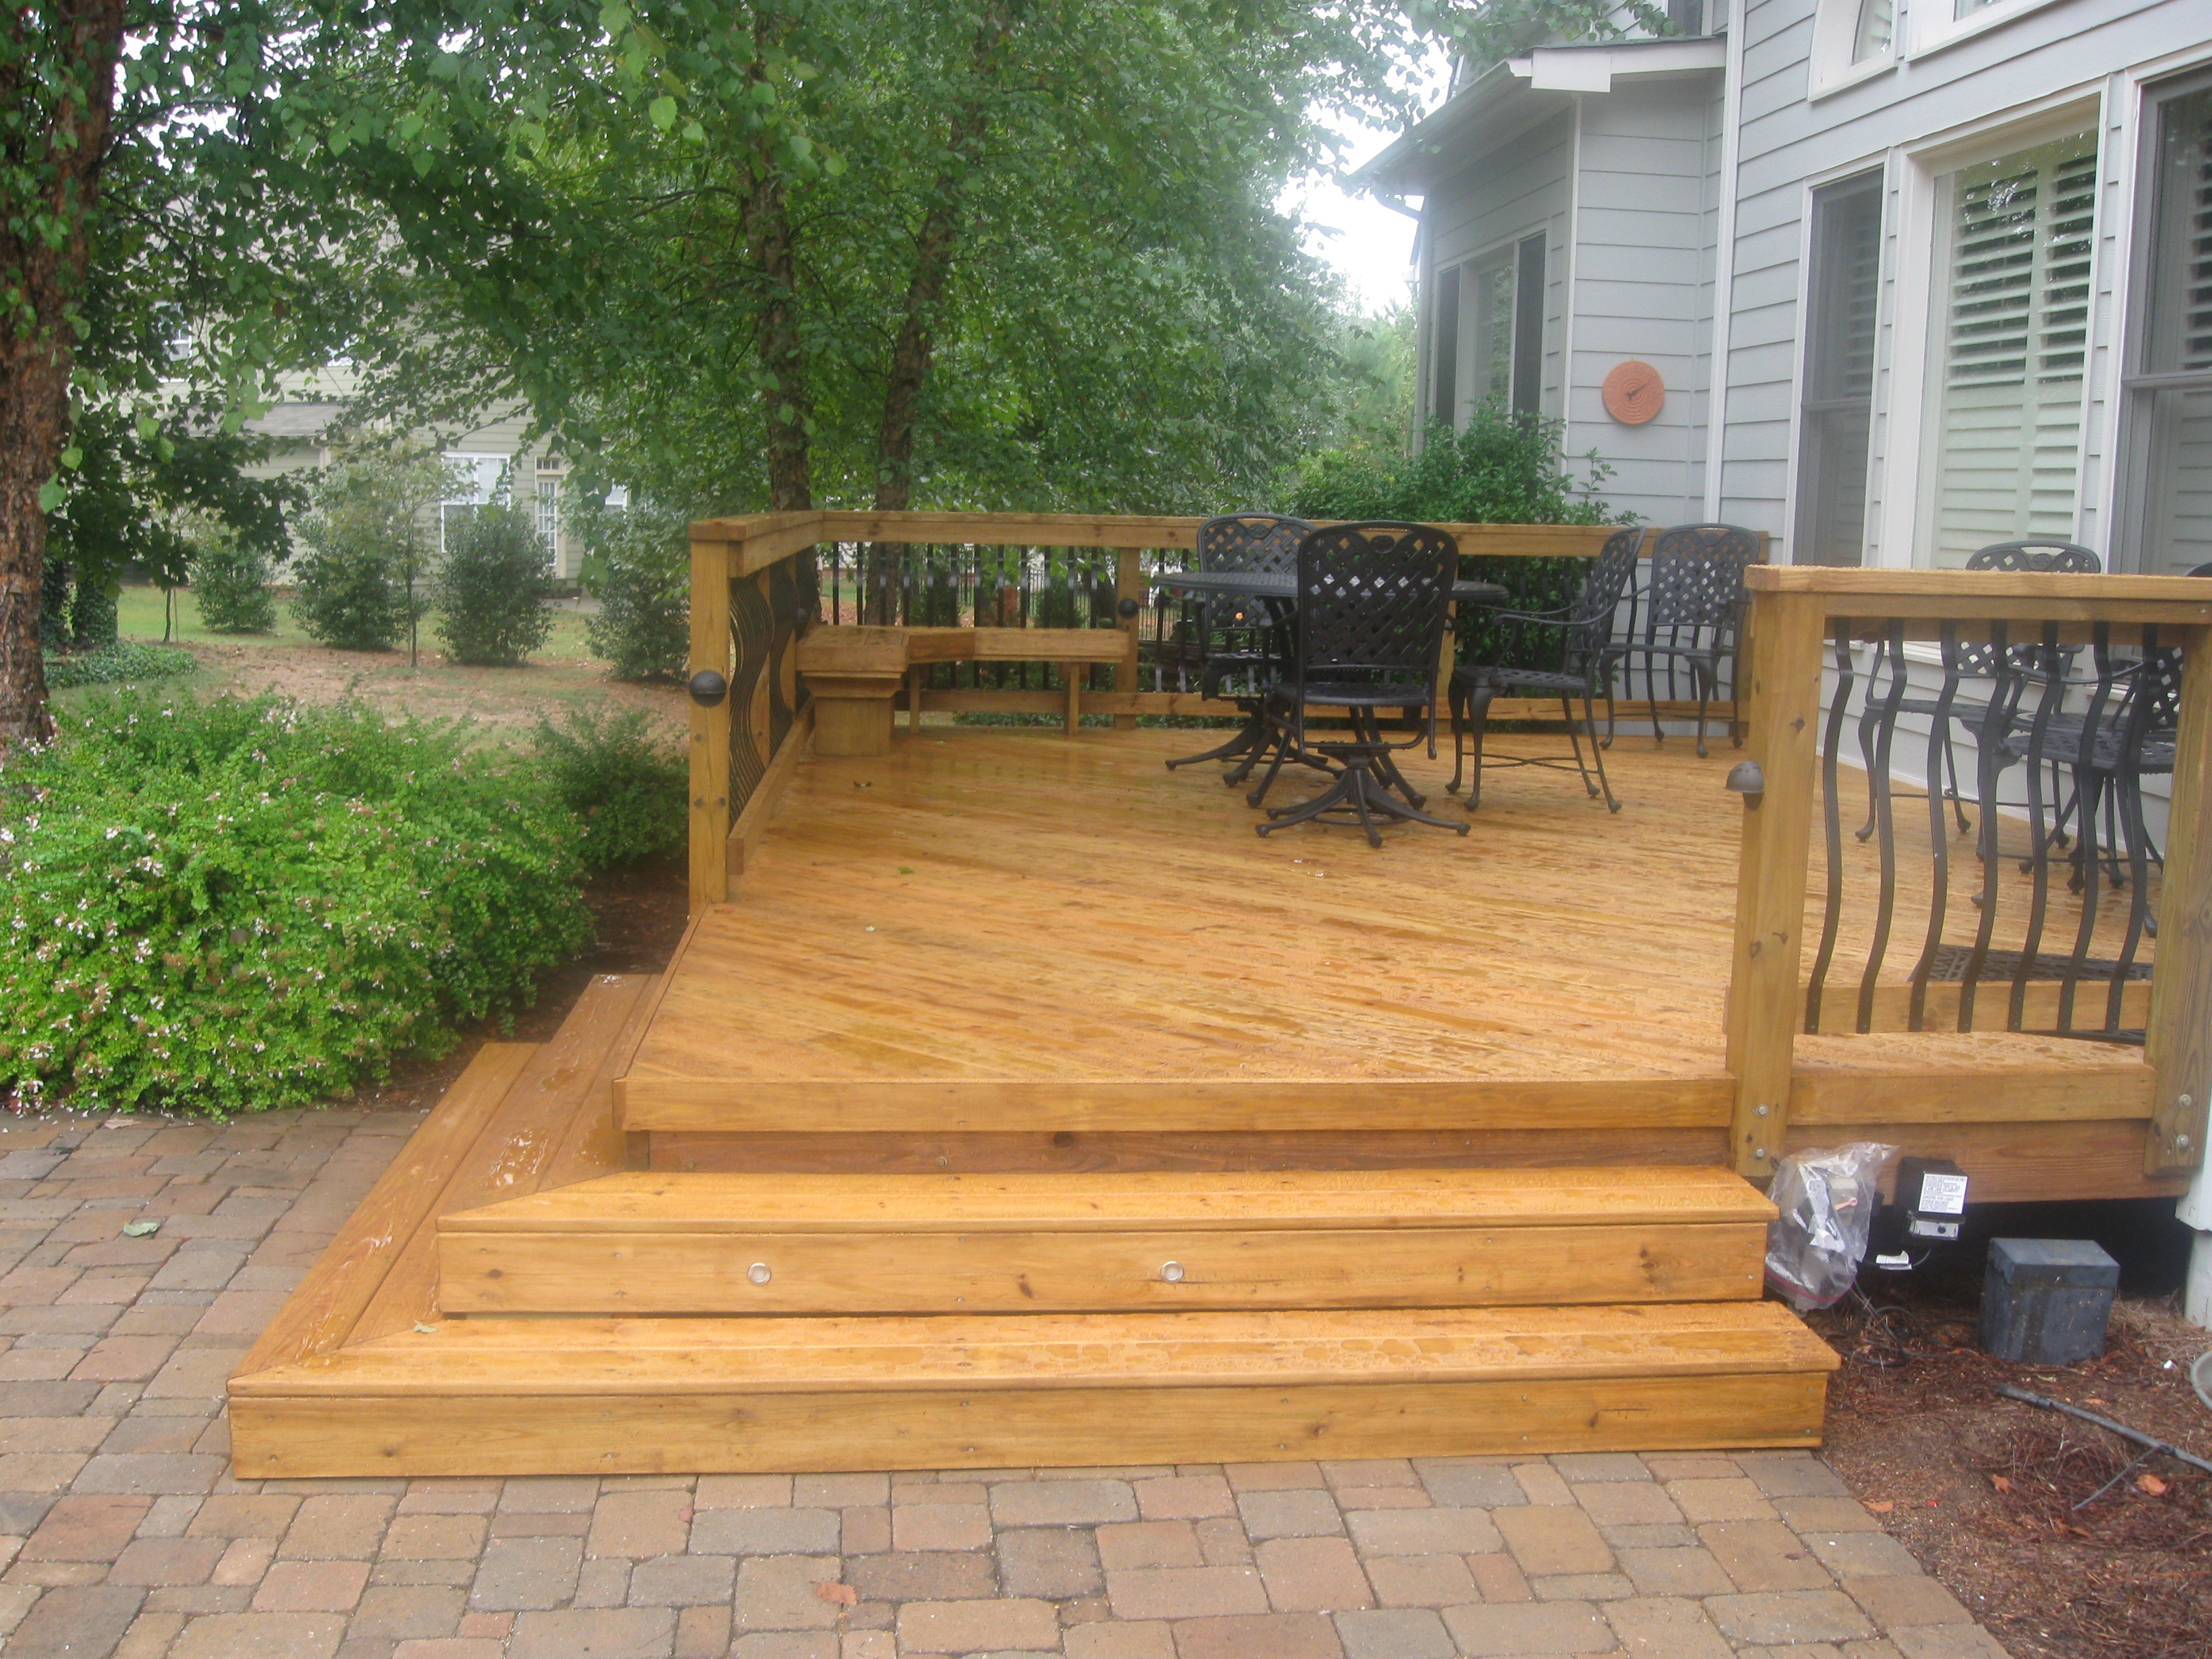 Patio Design, Small Decks, Open Stairs, Brick Patio ... on Wood Deck Ideas For Backyard  id=52827